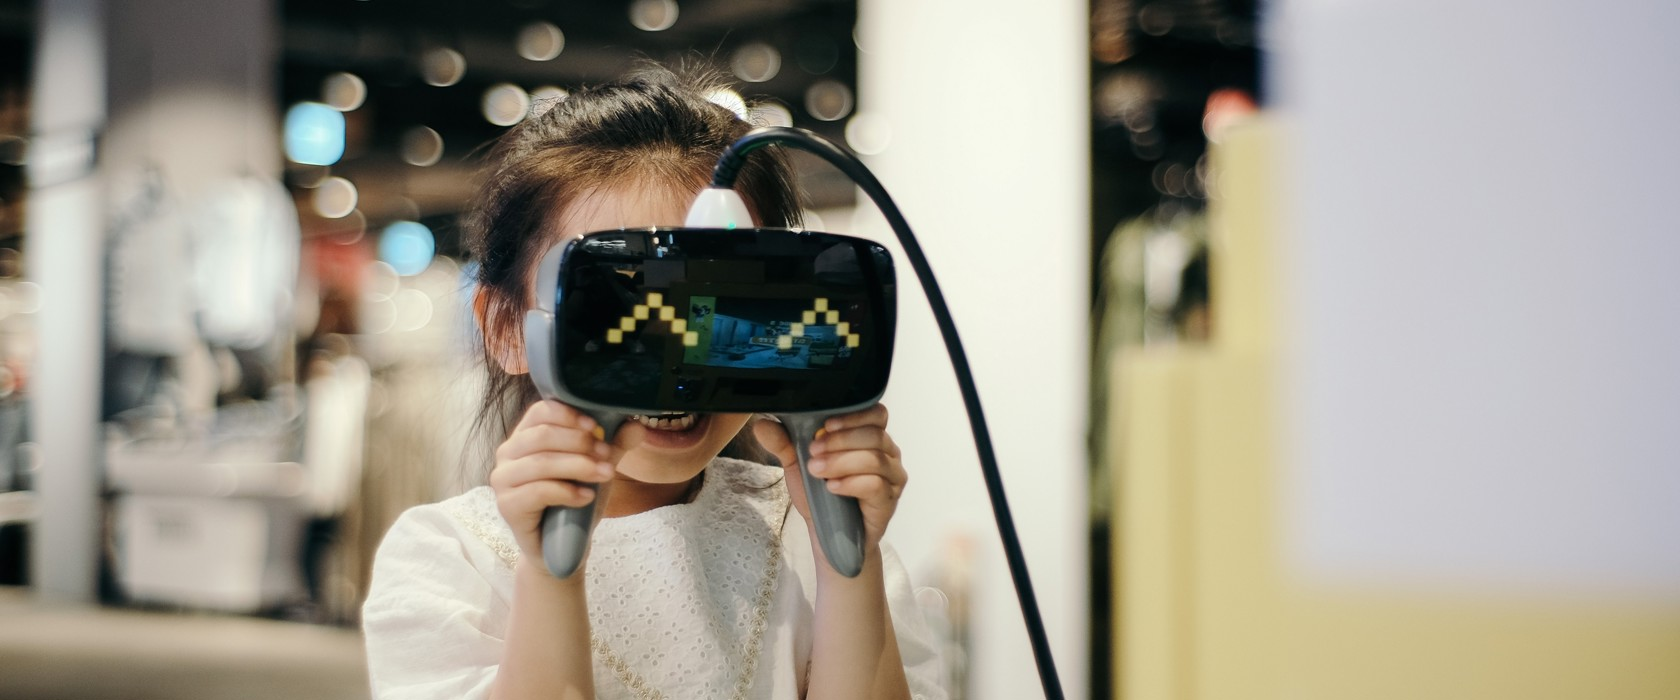 British Science Festival: Girl gamers- the solution to science's gender imbalance?